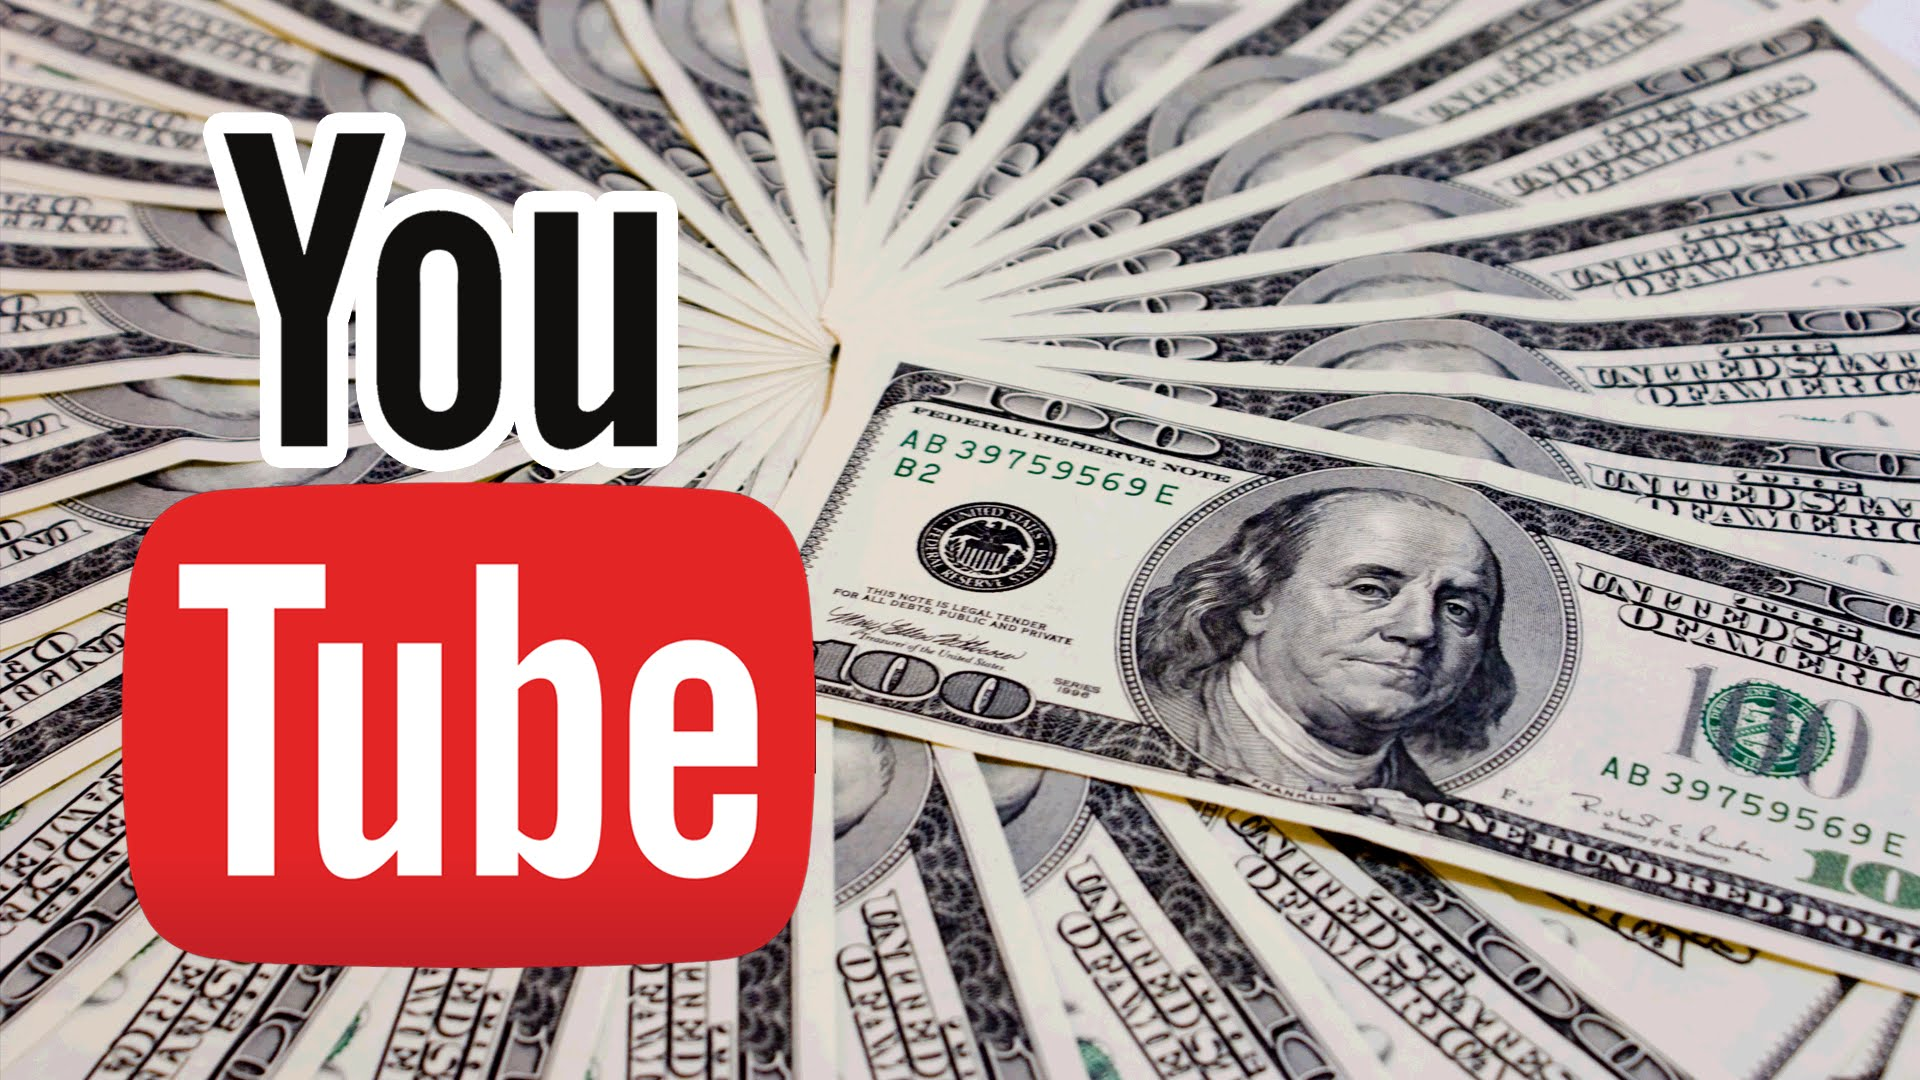 come si fa a guadagnare soldi su youtube